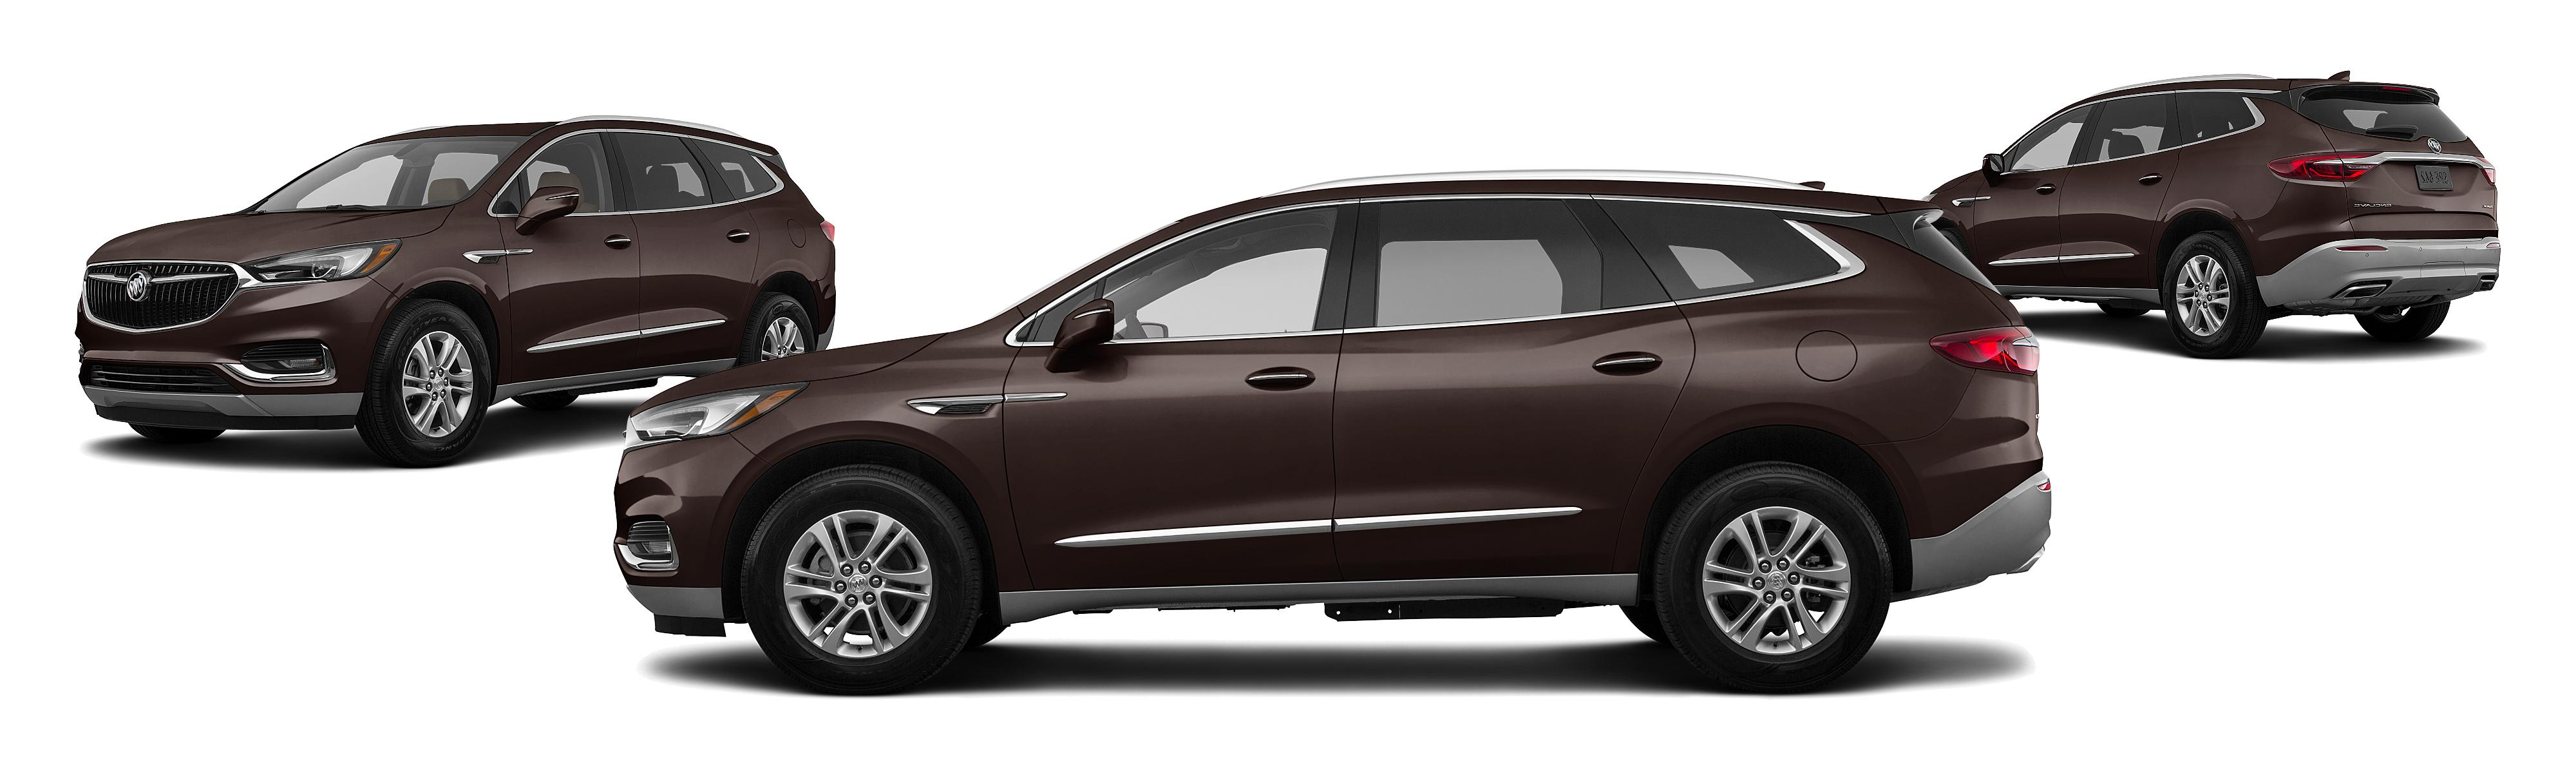 2018 Buick Enclave 4x4 Avenir 4dr Crossover Research GrooveCar